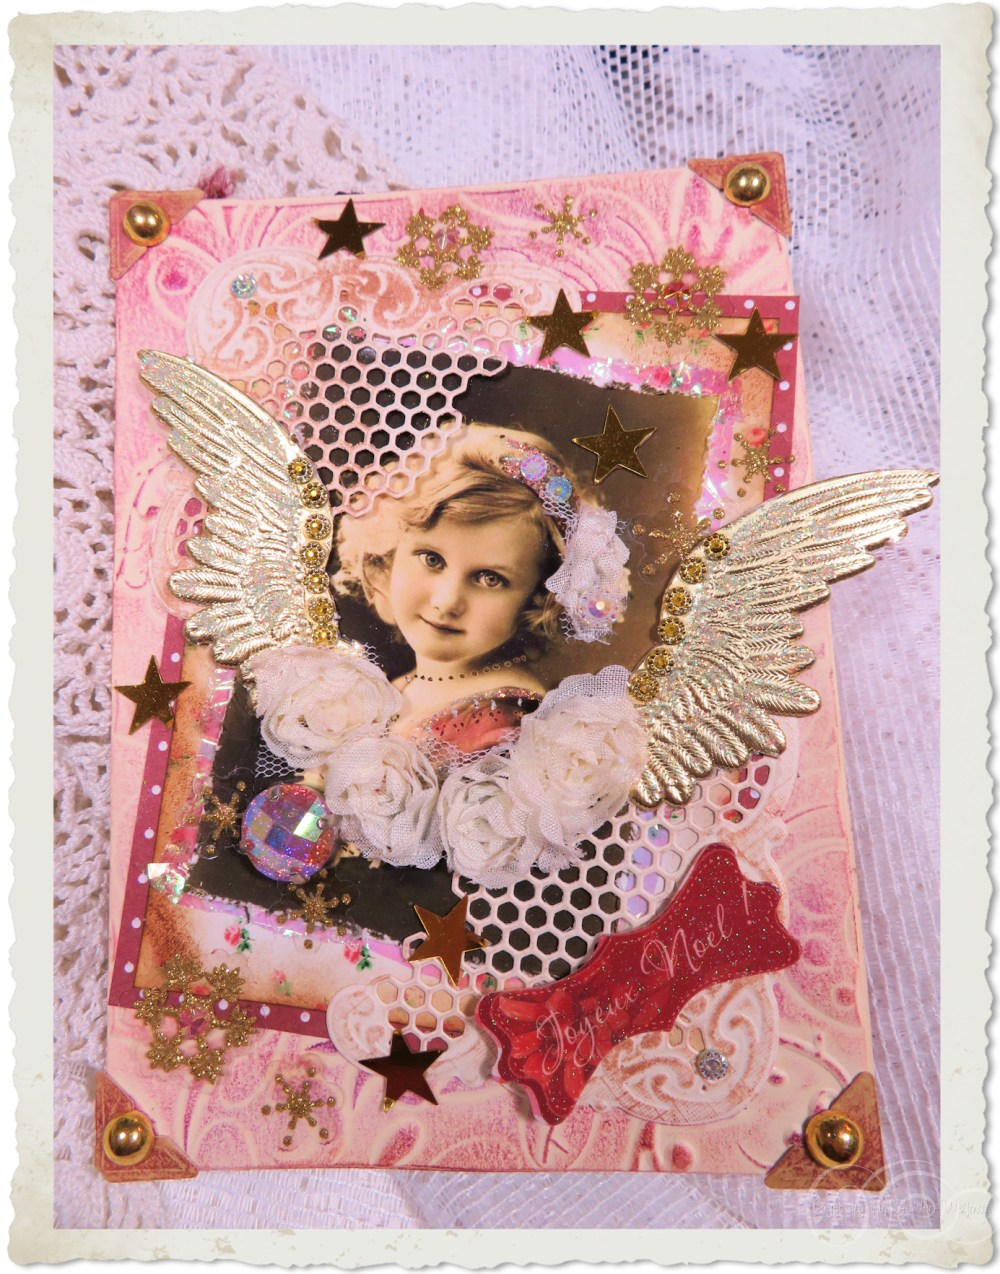 Handmade Christmas card with angel and golden wings